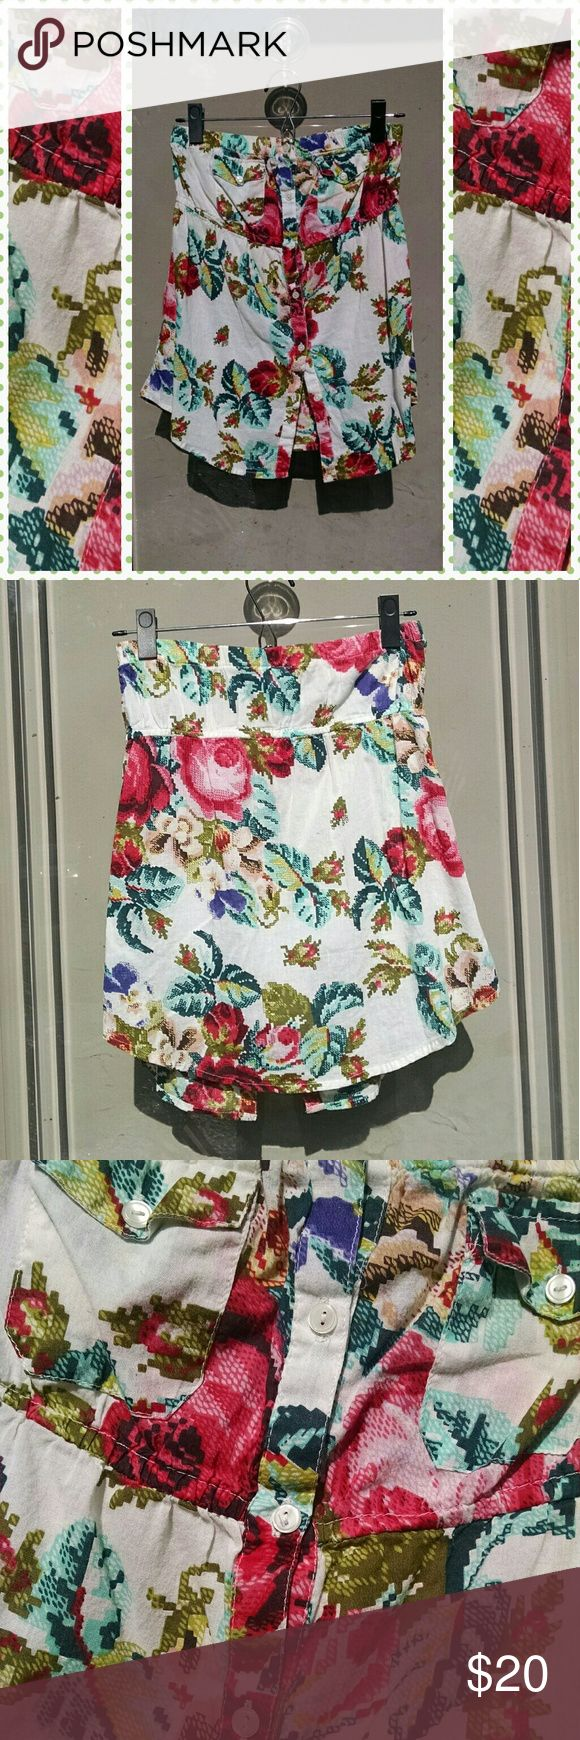 Strapless button down Floral top So cute for summer! Gently worn. Light weight material! Cross stitch print floral design!   Reasonable offers considered! BUNDLE AND SAVE! 😘  Tags summer vacation hot sexy sun beach pool flirty look stylish street Urban outfitters unif pin-up style vintage apothecary Vogue sun date night outfit celebrity elegant Urban Outfitters Tops